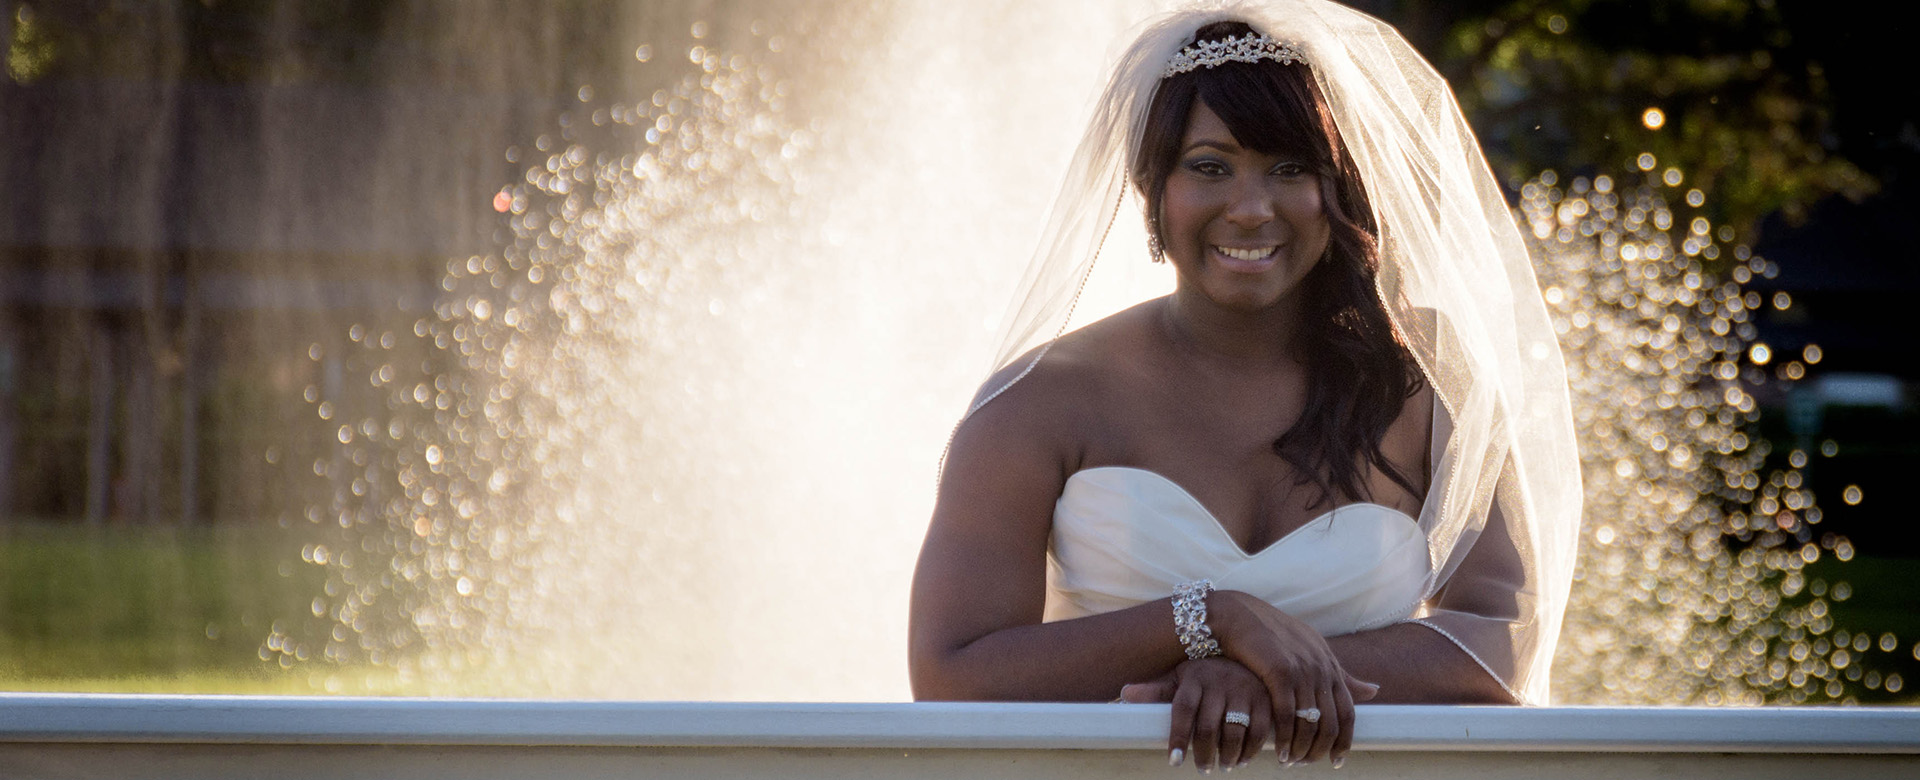 Wedding Photo Videos created by PhotoVid Gallery